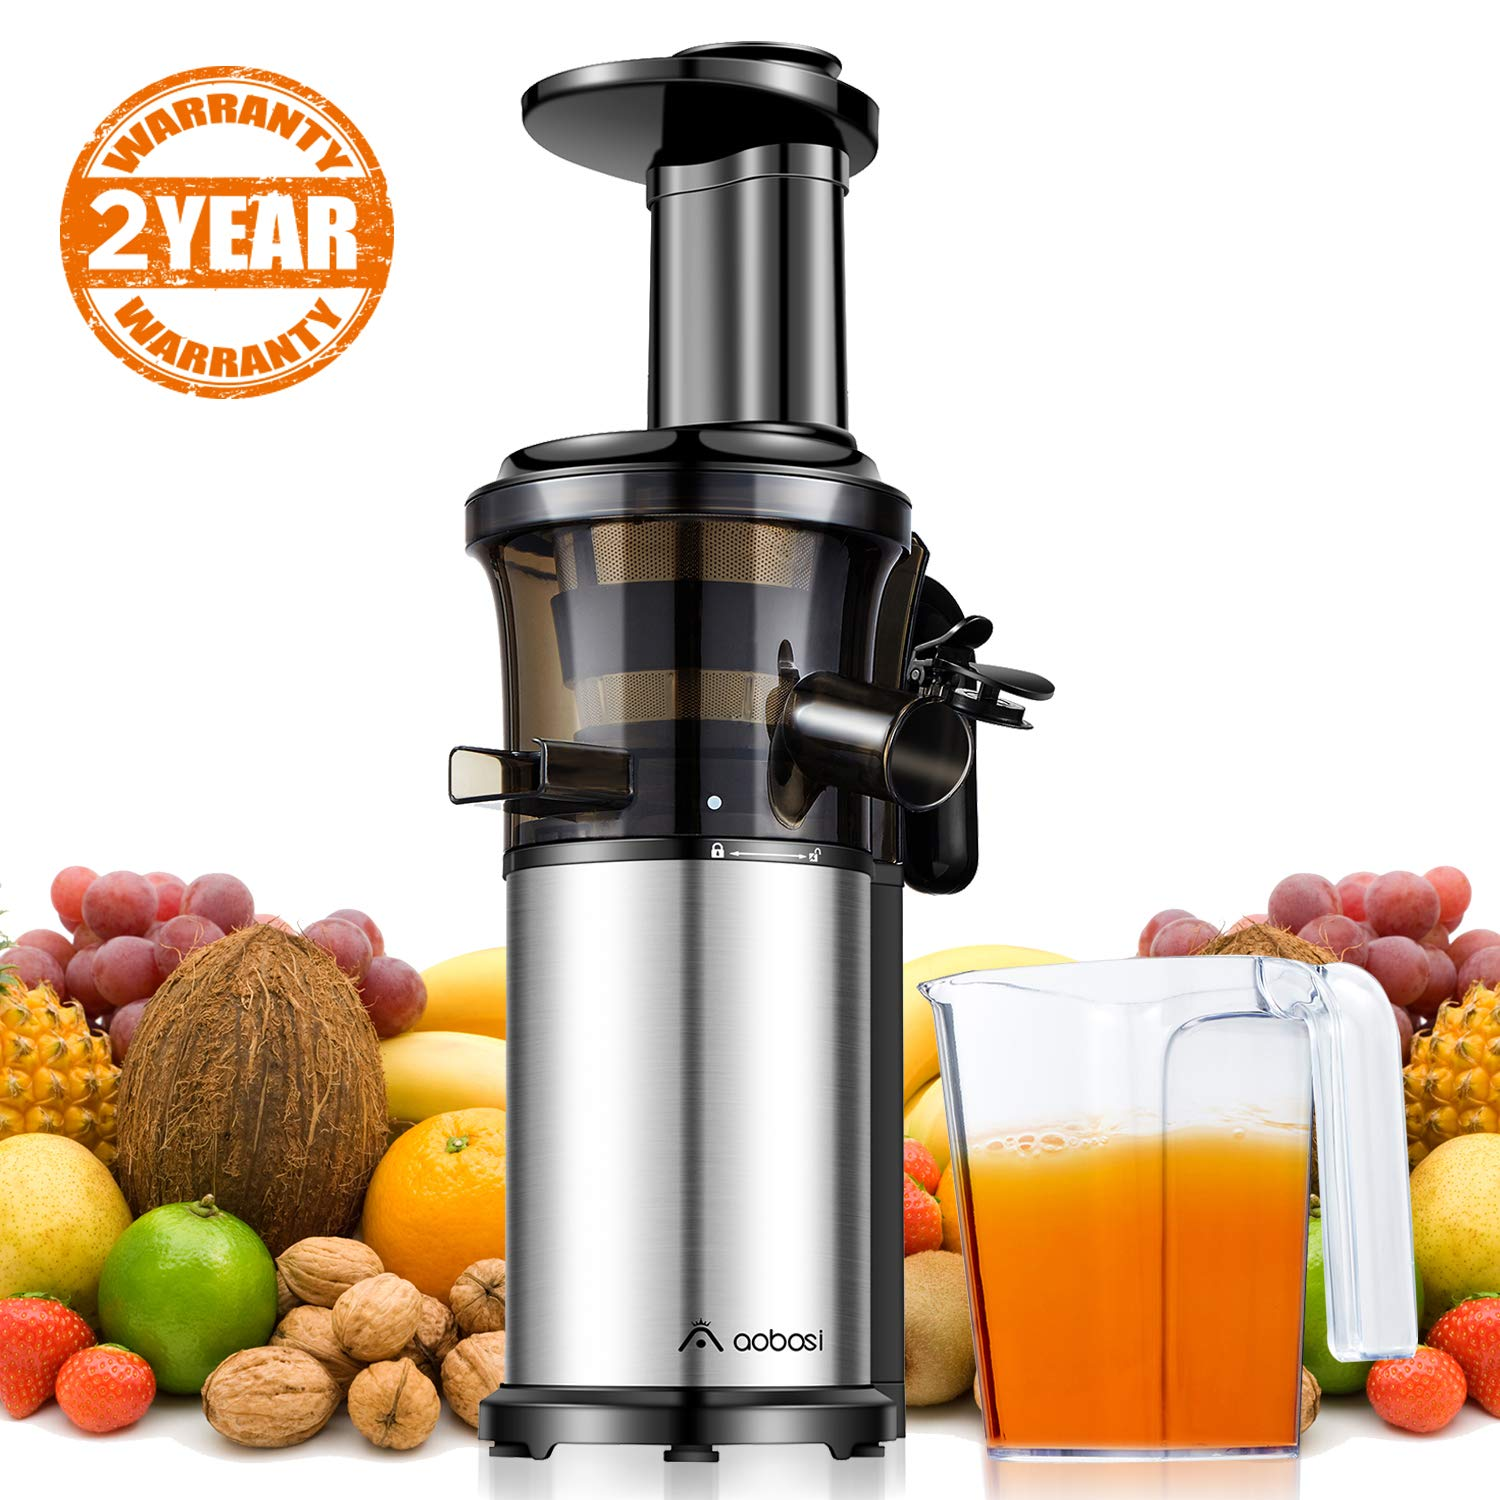 Aobosi Slow Masticating Juicer Extractor Compact Cold Press Juicer Machine with Portable Handle/Quiet Motor/Reverse Function/Juice Jug and Clean Brush for High Nutrient Fruit & Vegetable Juice New Package---ON SALE